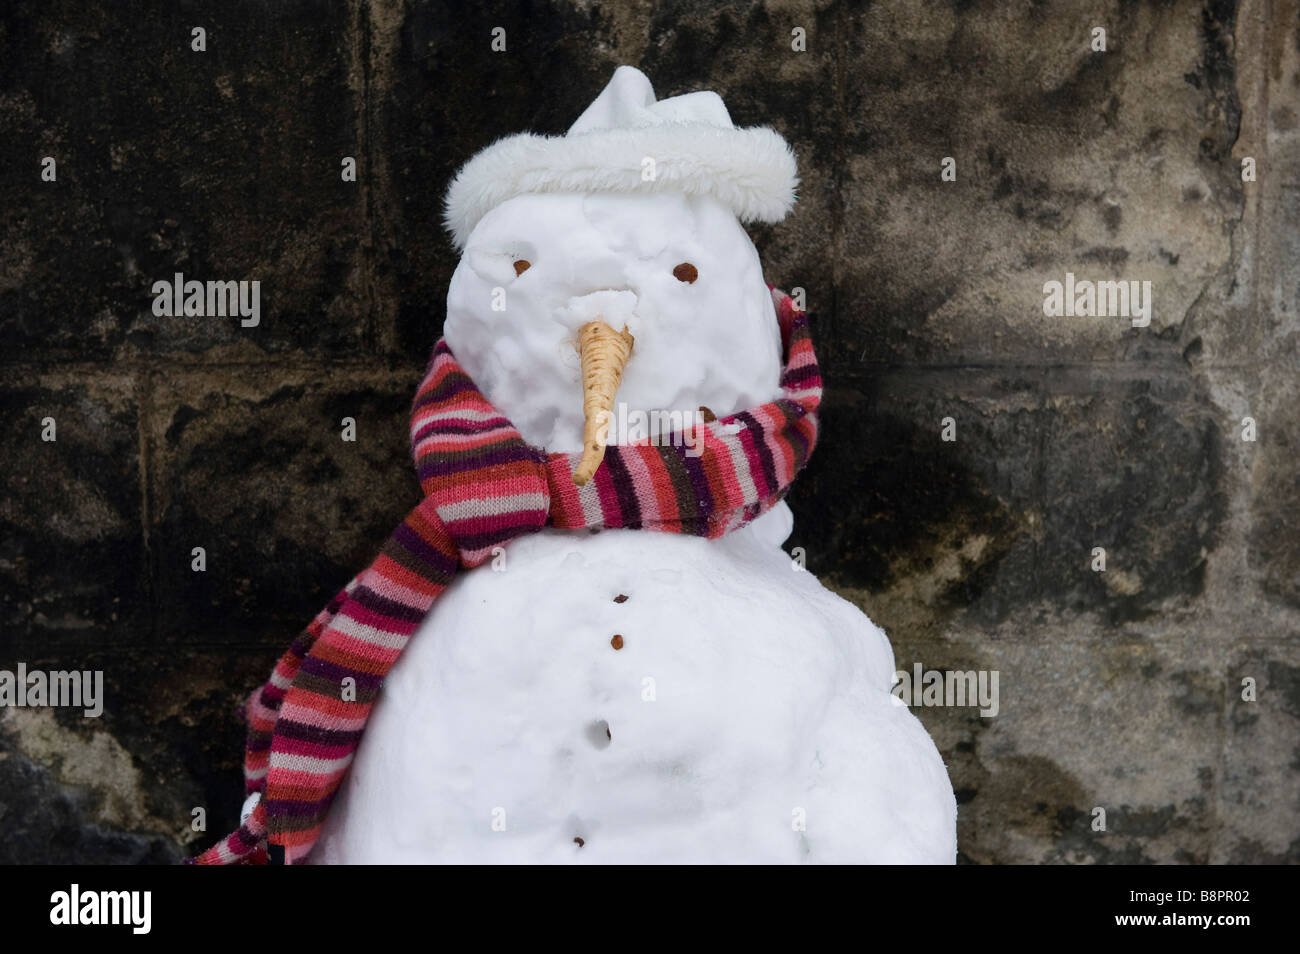 A snowman with college scarf in Oxford - Stock Image